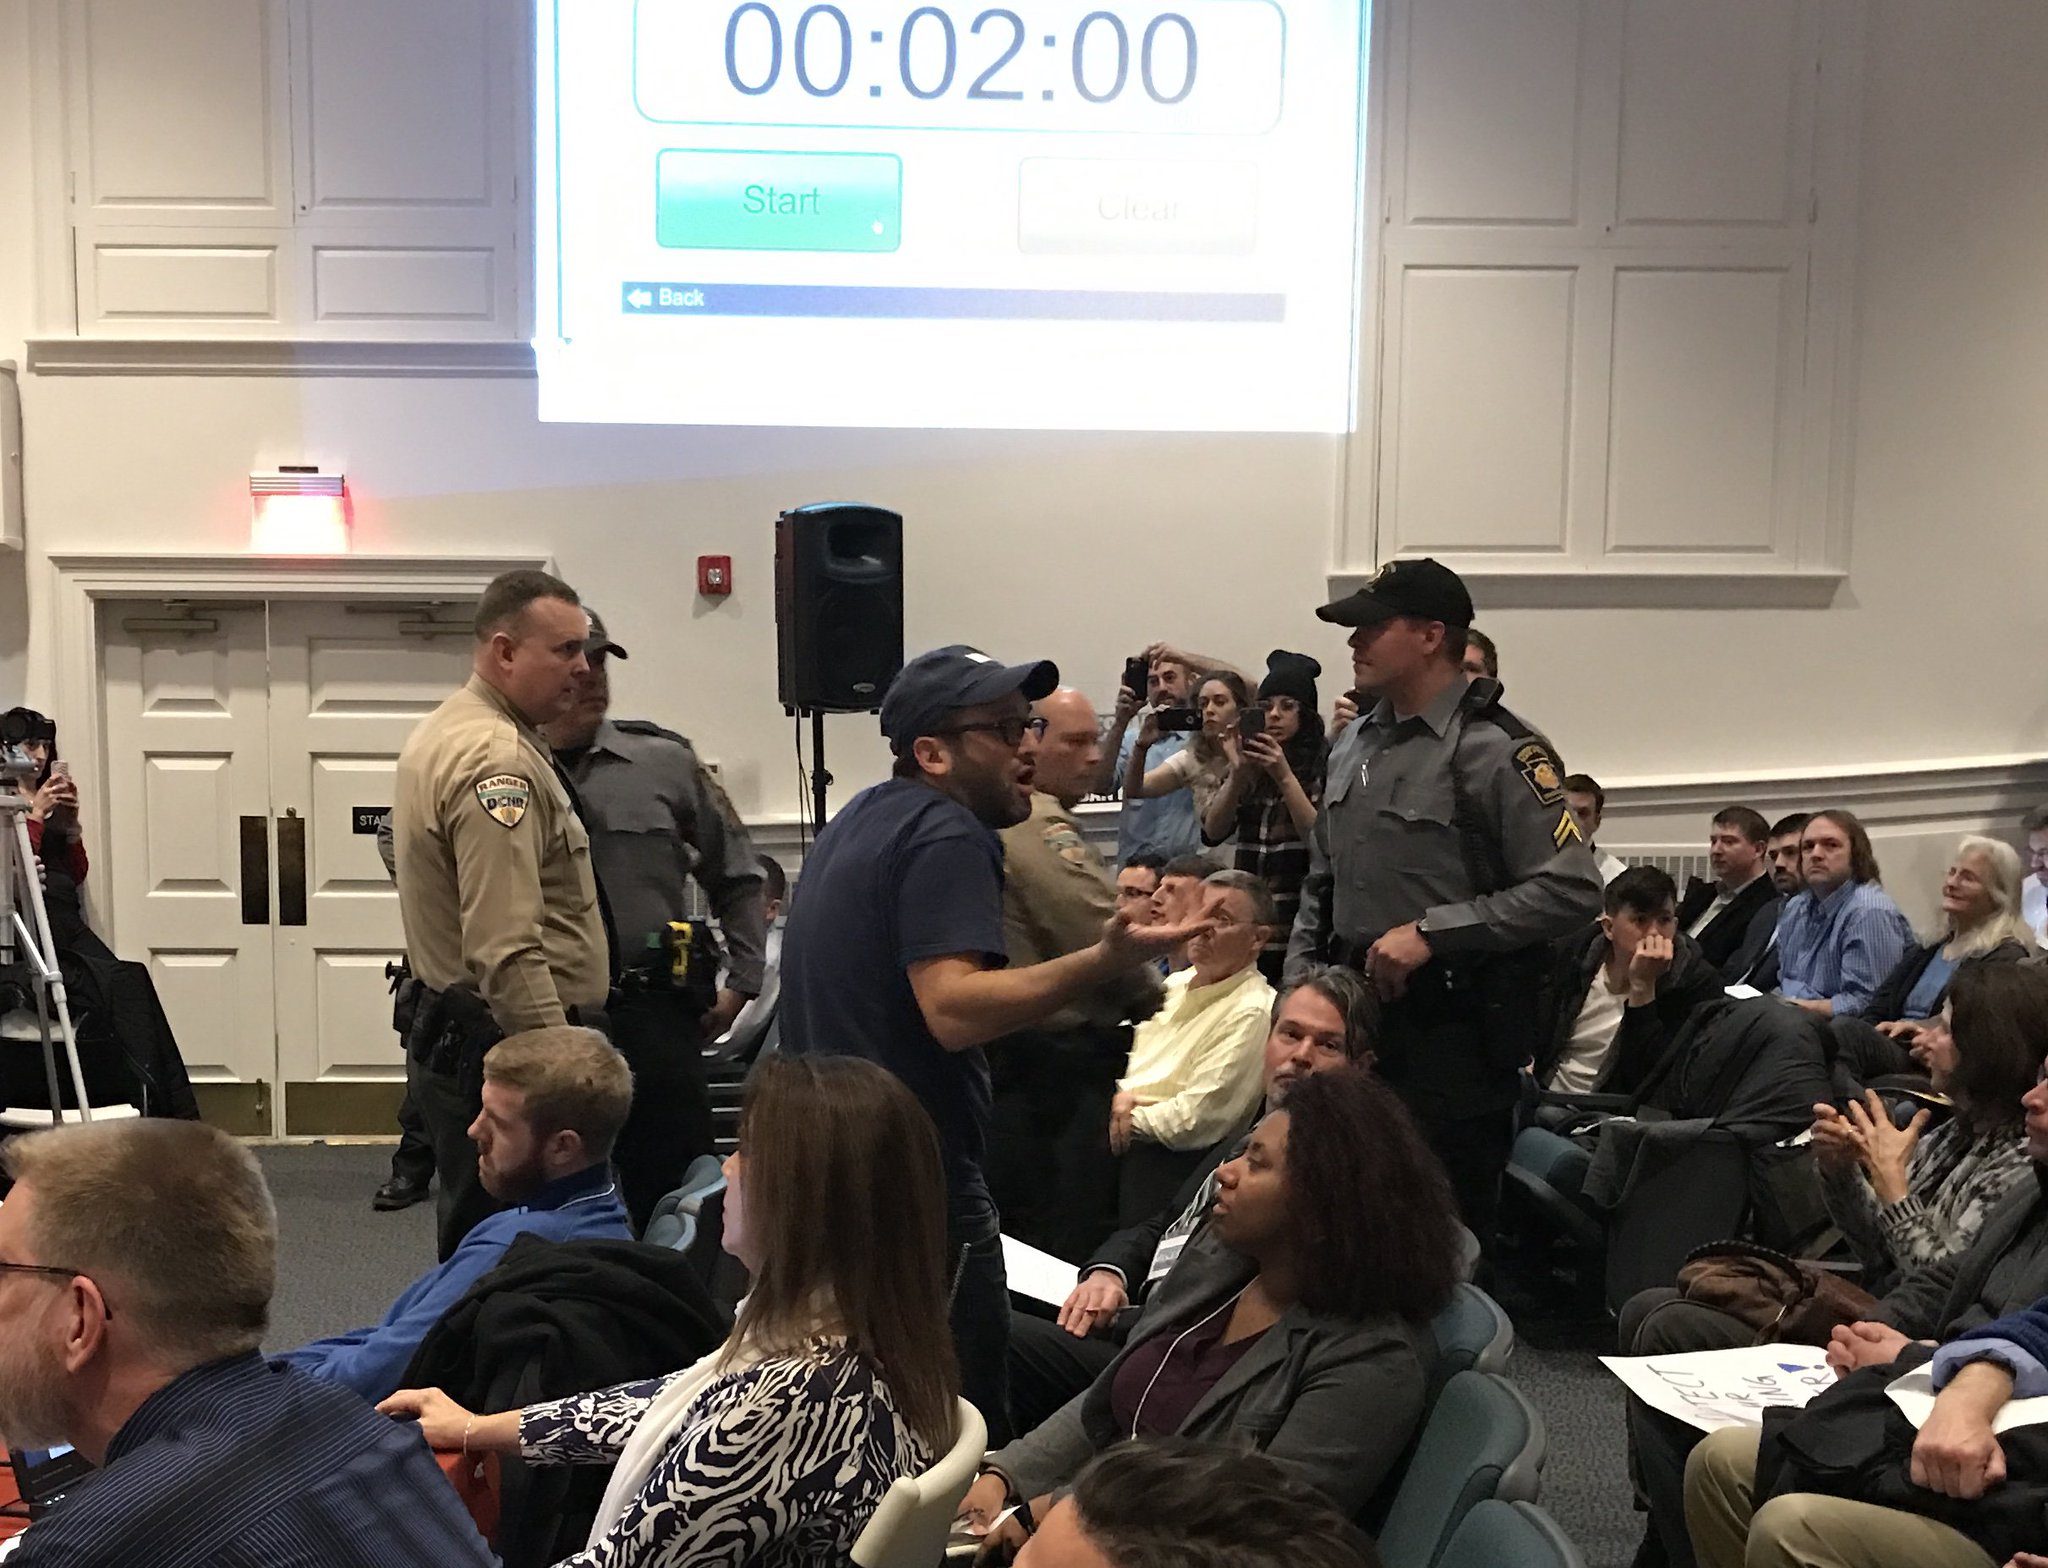 #JoshFox, director film #Gasland, gets some attention from troopers @DRBC1961 due to his complaints about procedure at #banfracking protest. https://t.co/EwTCR3N2Ho